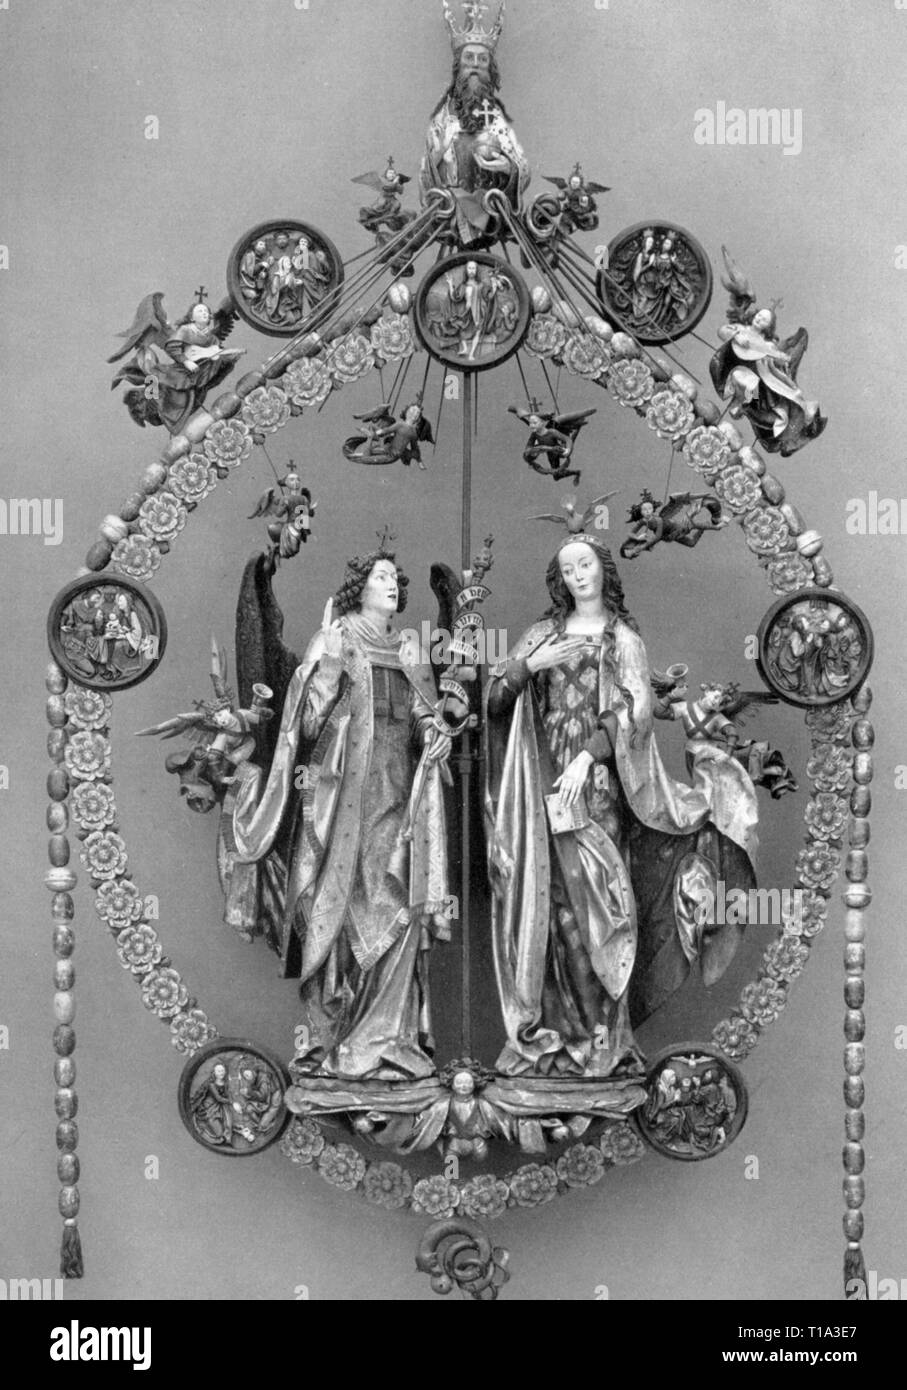 religion, Christianity, Madonna / Mary with child, 'Annunciation by the archangel Gabriel', sculpture, by Veit Stoss (circa 1447 - 1533), 1517 / 1518, wood, painted, Saint Lawrence's Church, Nuremberg, Additional-Rights-Clearance-Info-Not-Available - Stock Image